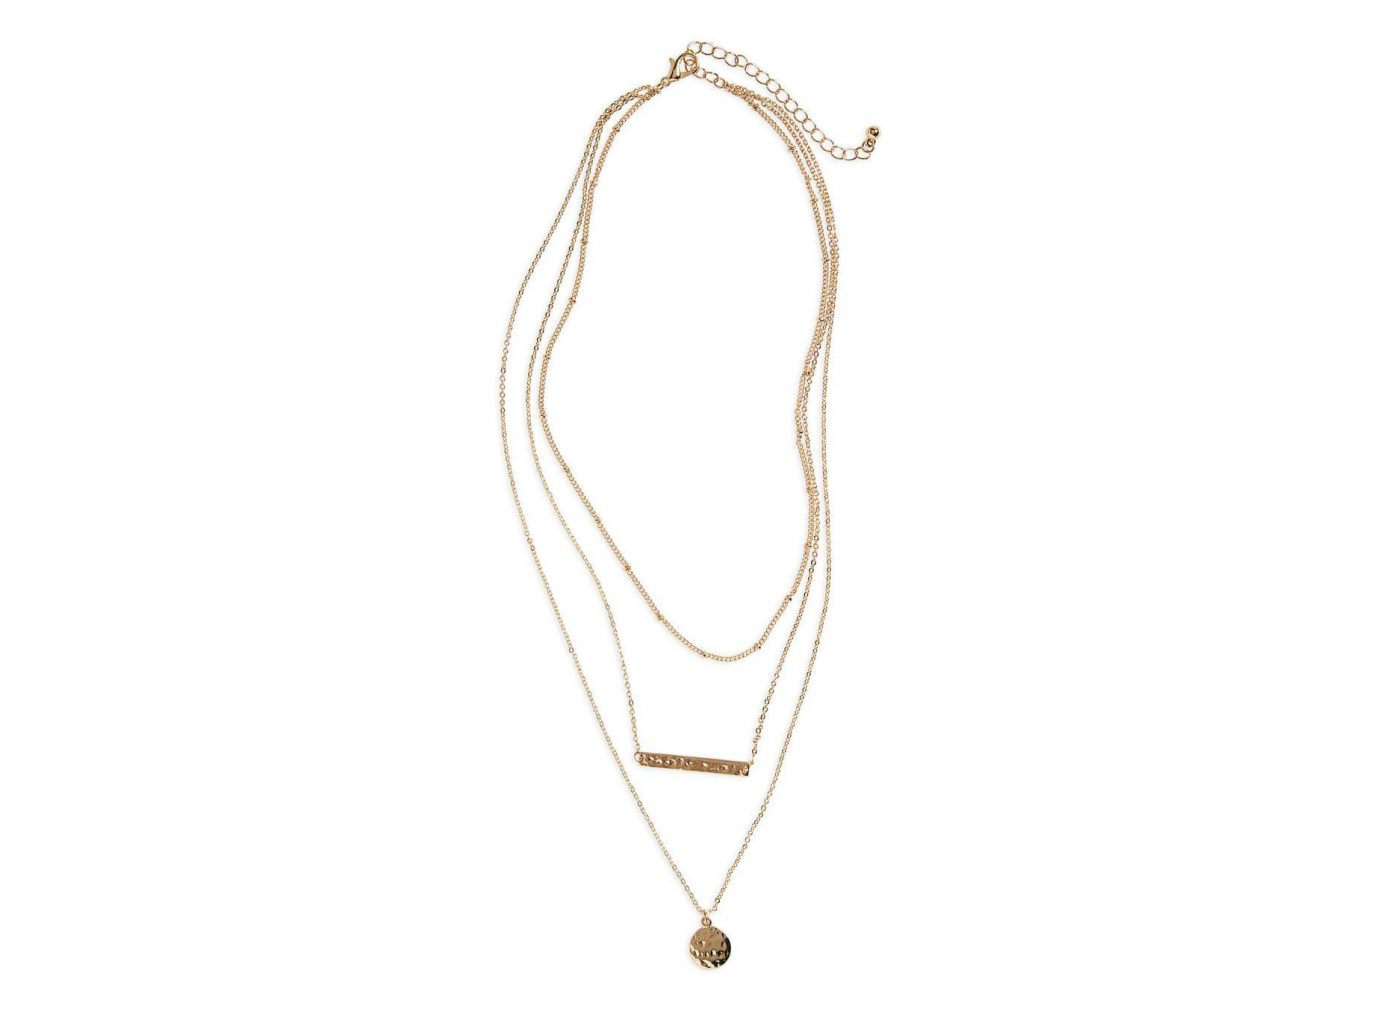 Celebs Style + Design Travel Shop necklace jewellery fashion accessory chain pendant body jewelry neck product product design necklet accessory